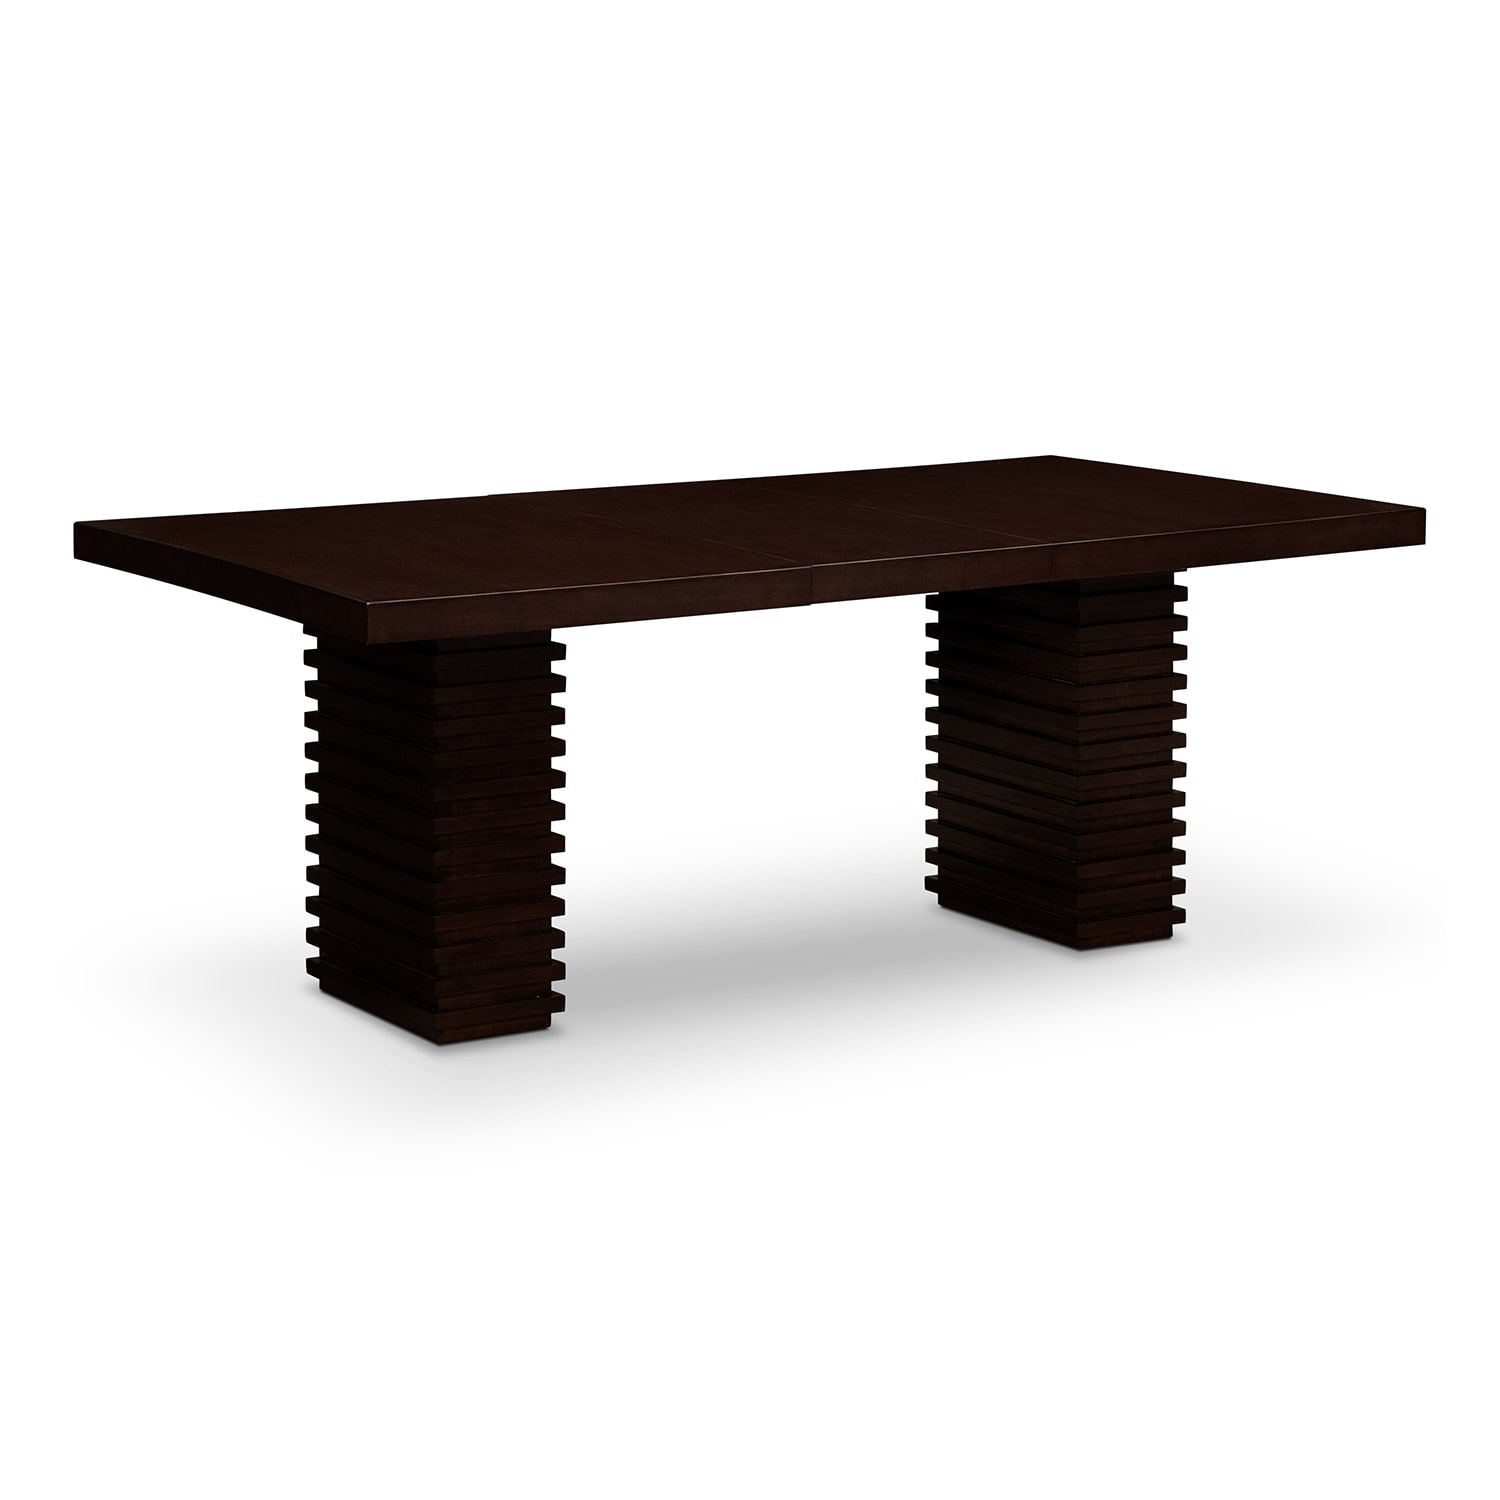 Paragon Dining Table - Merlot